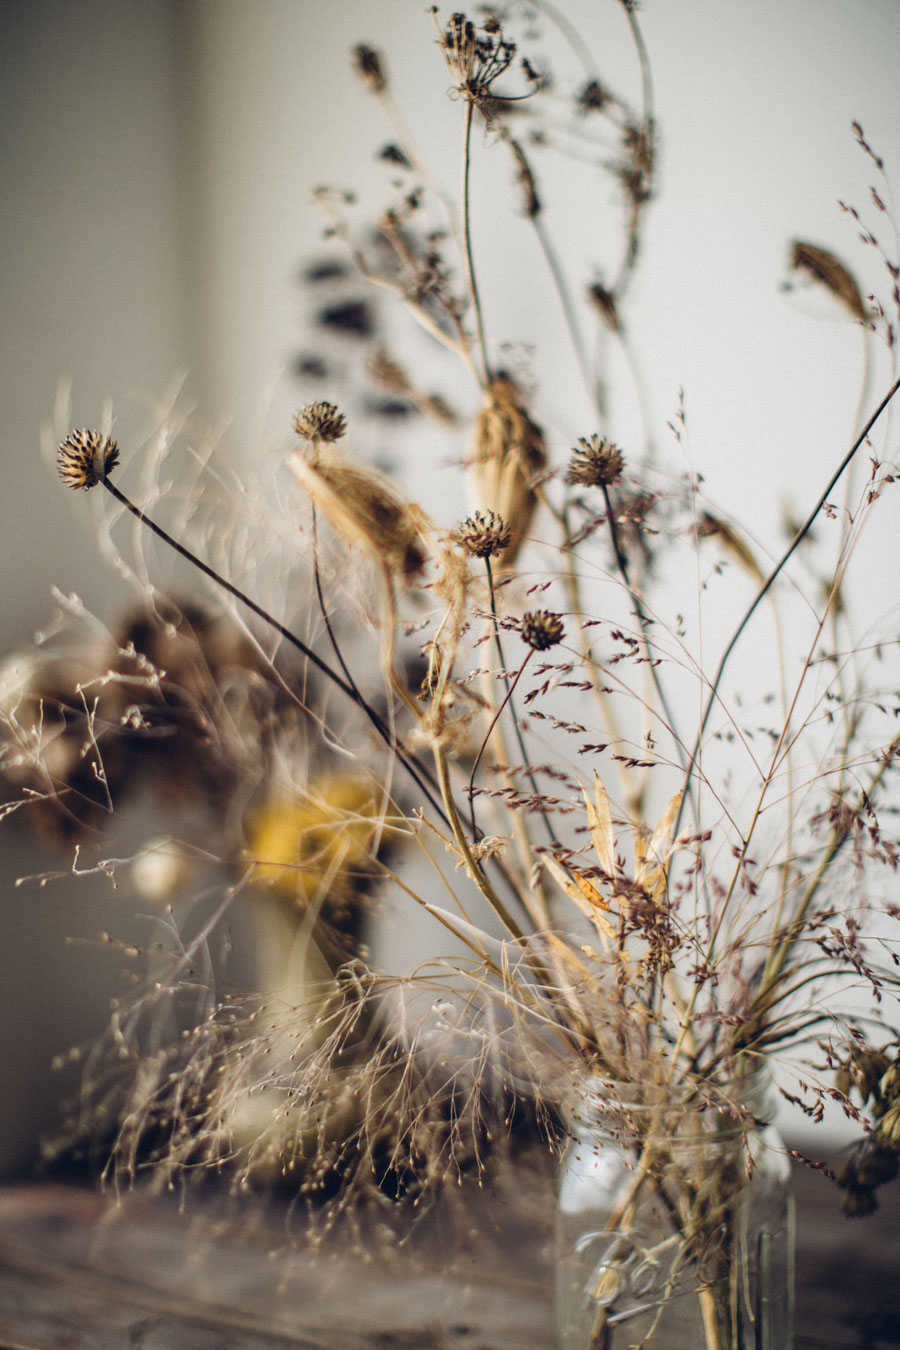 Collected dried flower stems